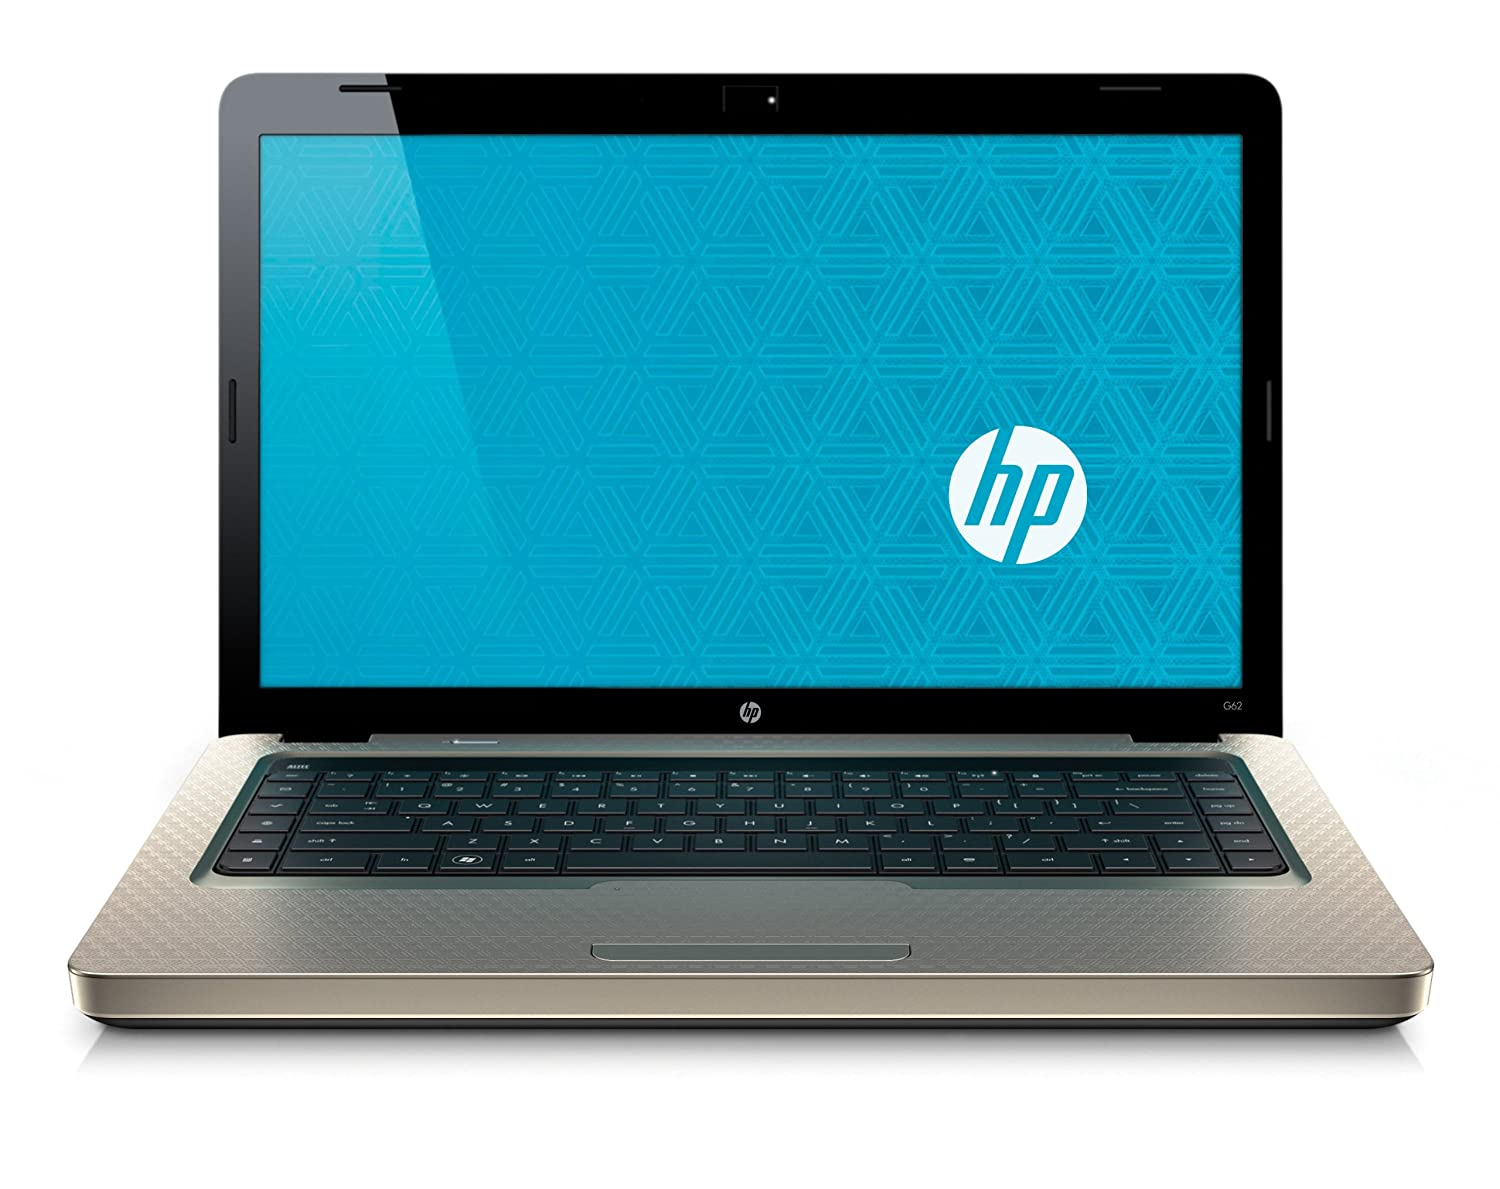 "HP G62-B20SA 15.6"" Laptop (AMD Phenom II Processor, 4GB RAM, 500GB HDD,  Windows 7 Home Premium 64-Bit): Amazon.co.uk: Computers & Accessories"